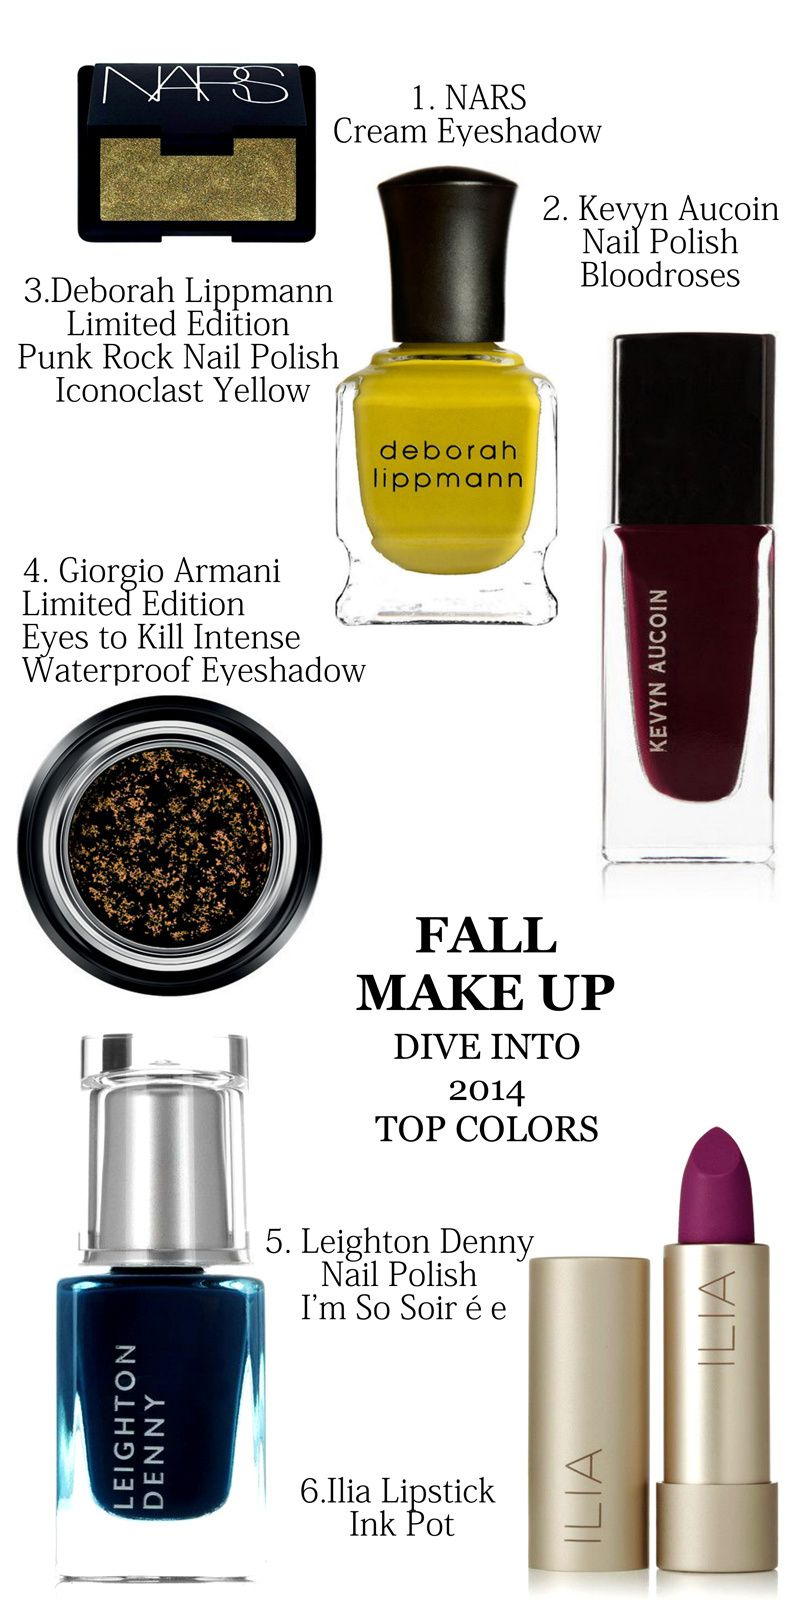 {SHOPPING GUIDE} FALL MAKEUP 2014